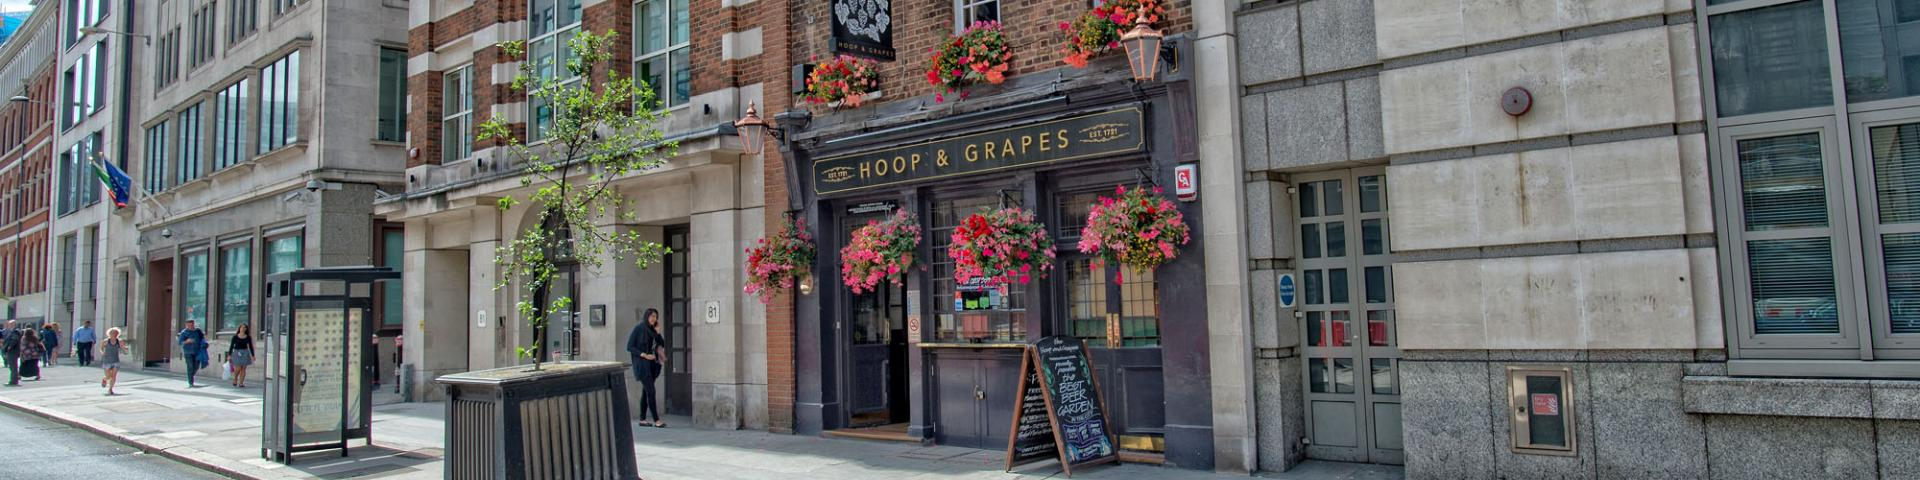 Hoop & Grapes, Farringdon